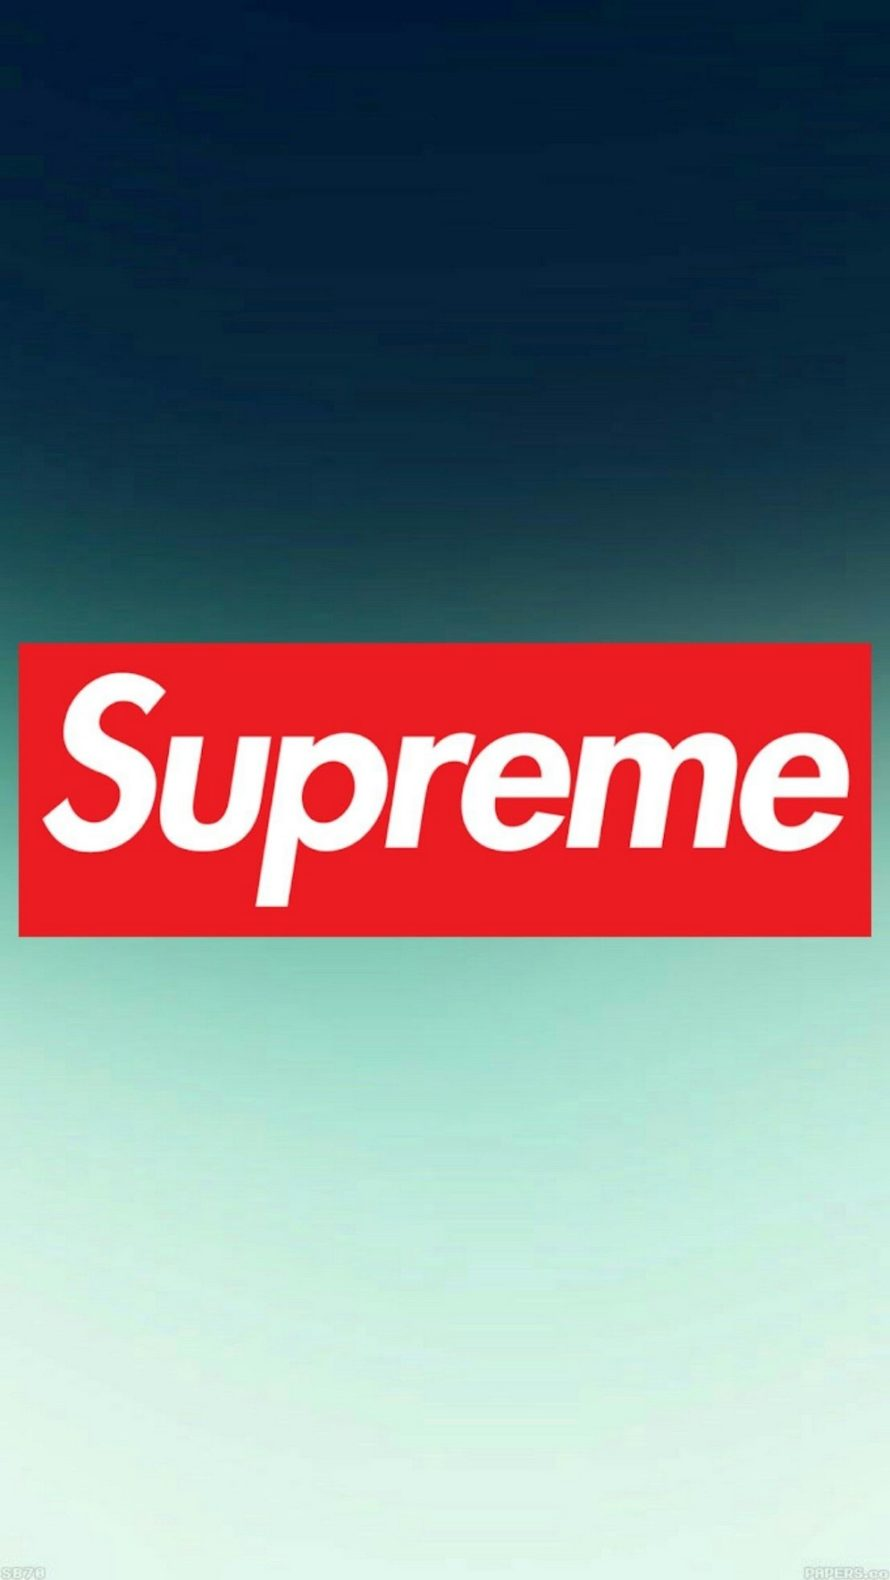 Supreme Wallpapers Phone